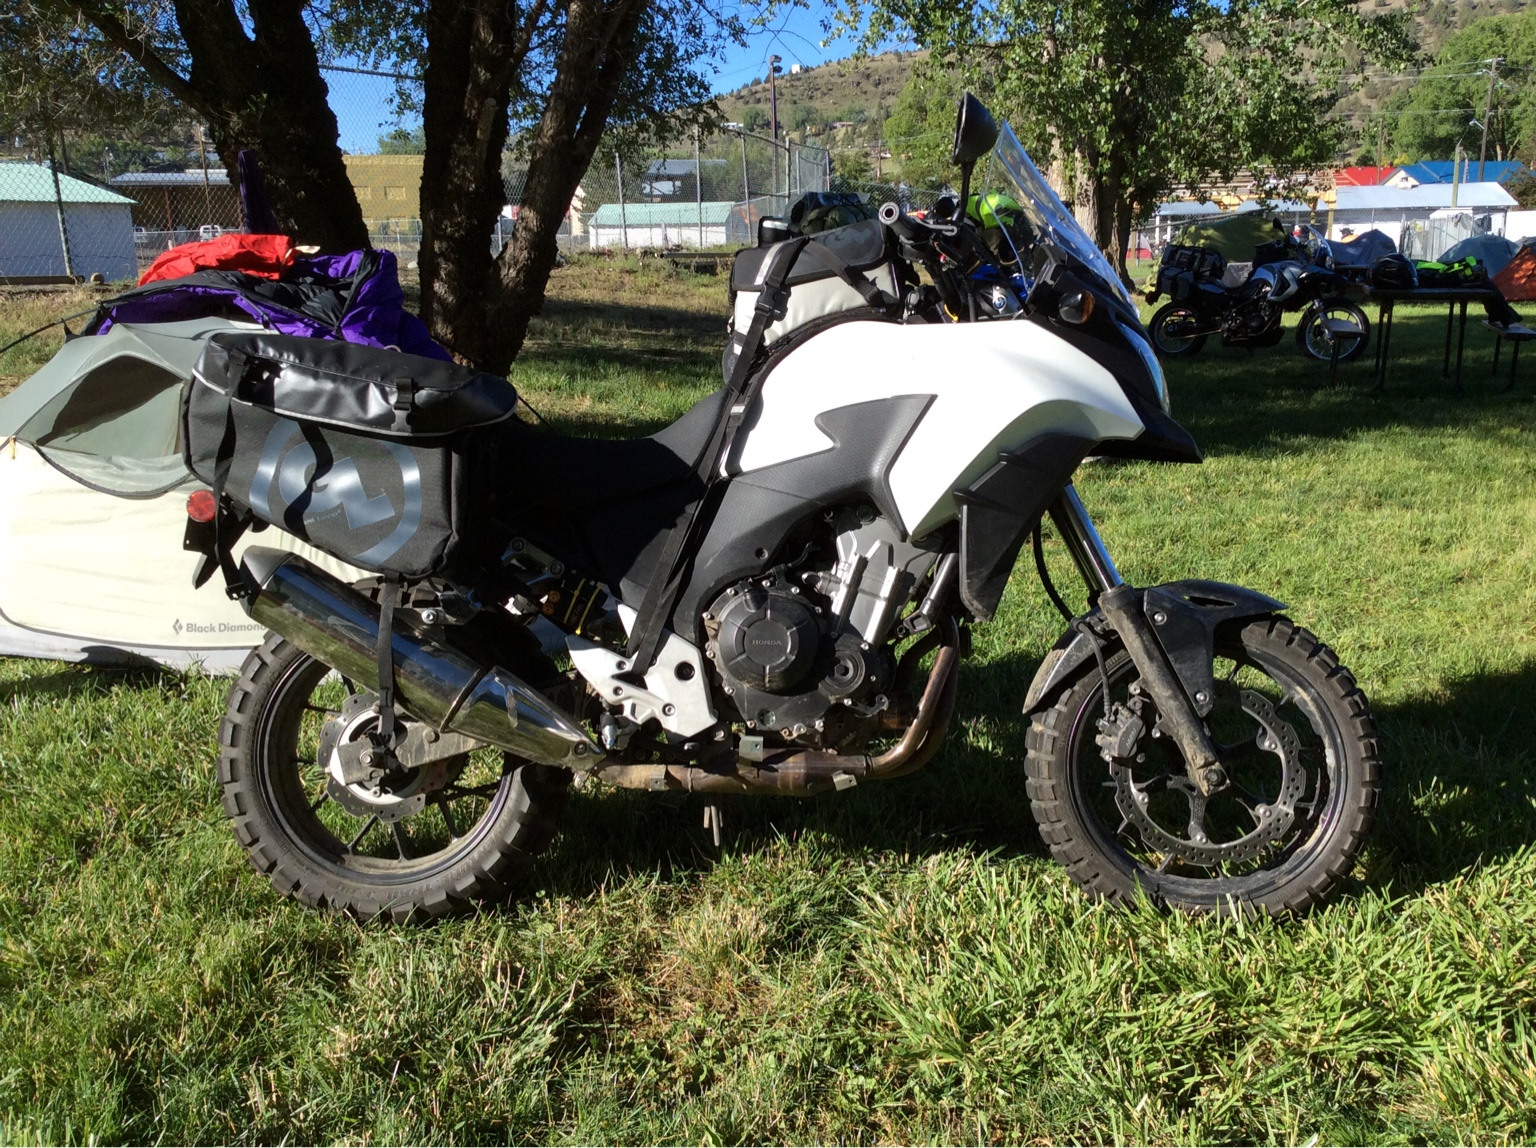 Siskiyou Panniers And Kiger Tank Bag On Rally Raid Honda CB500X Level 2 Build Upgraded Suspension W Stock Wheels With Side Luggage Racks